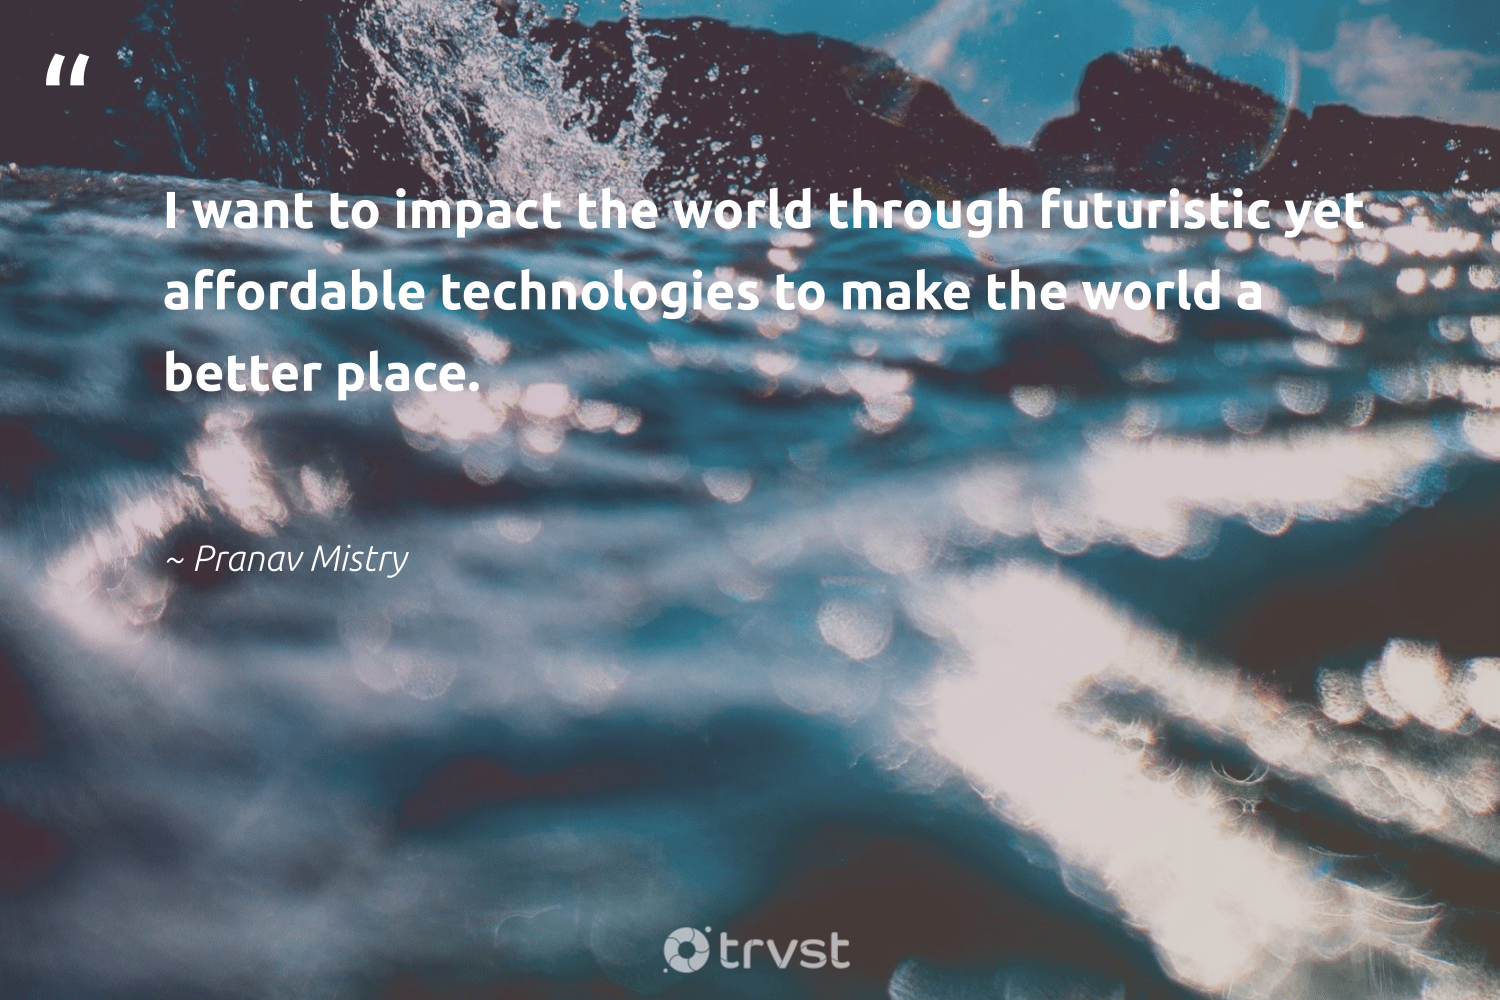 """I want to impact the world through futuristic yet affordable technologies to make the world a better place.""  - Pranav Mistry #trvst #quotes #impact #affordable #greenenergy #ethicalbusiness #livegreen #planetearthfirst #renewableenergy #weareallone #zerocarbon #takeaction"